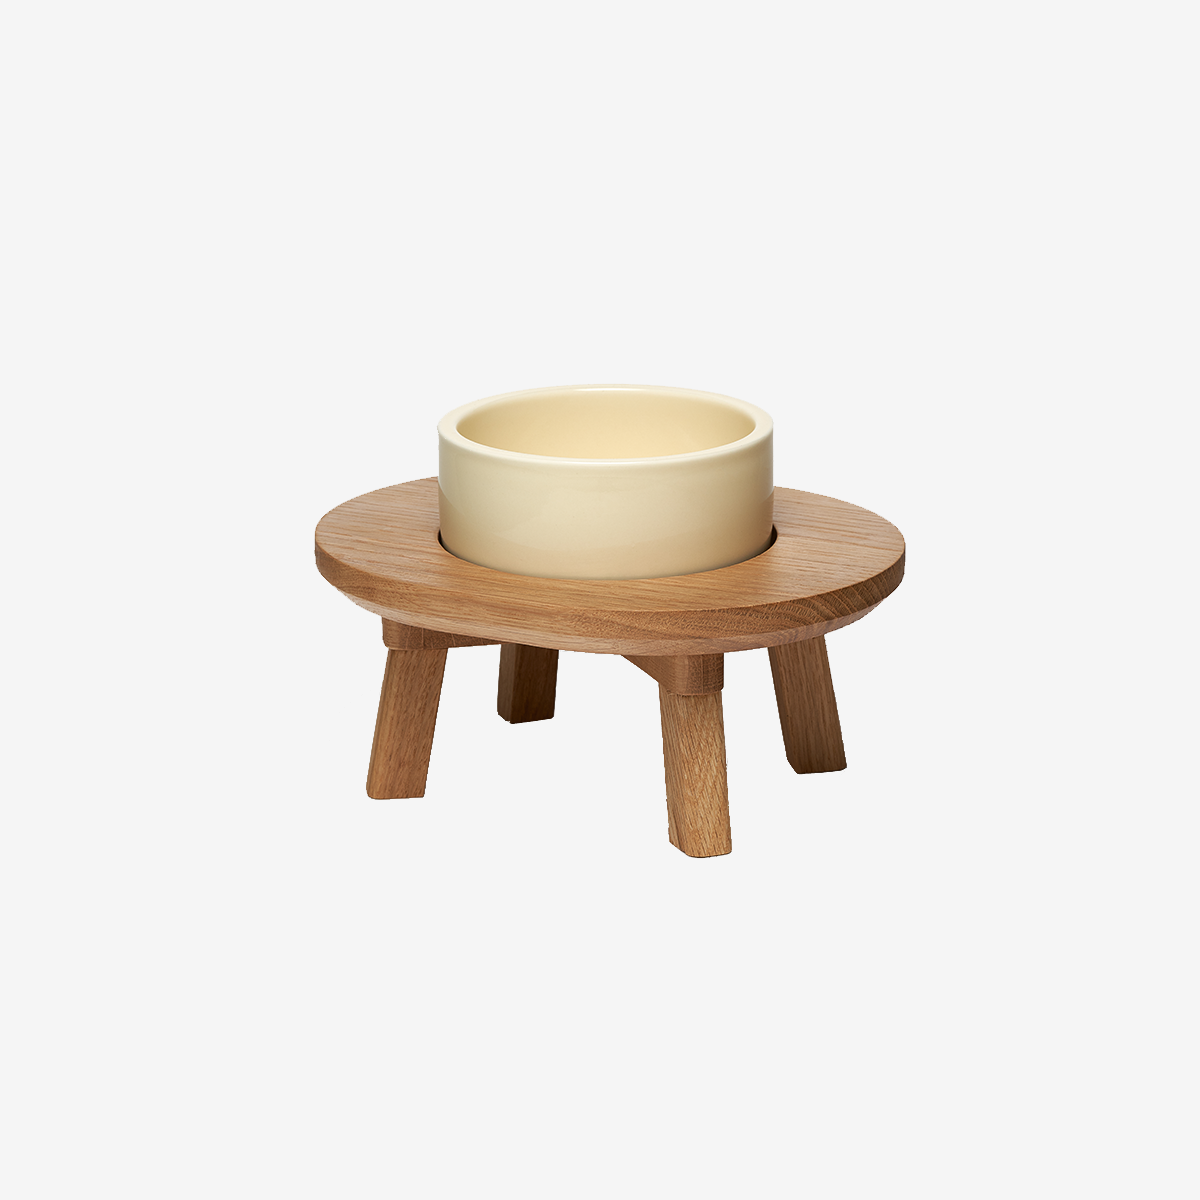 스몰스터프 DINING SET WOOD 1P WHITE OAK